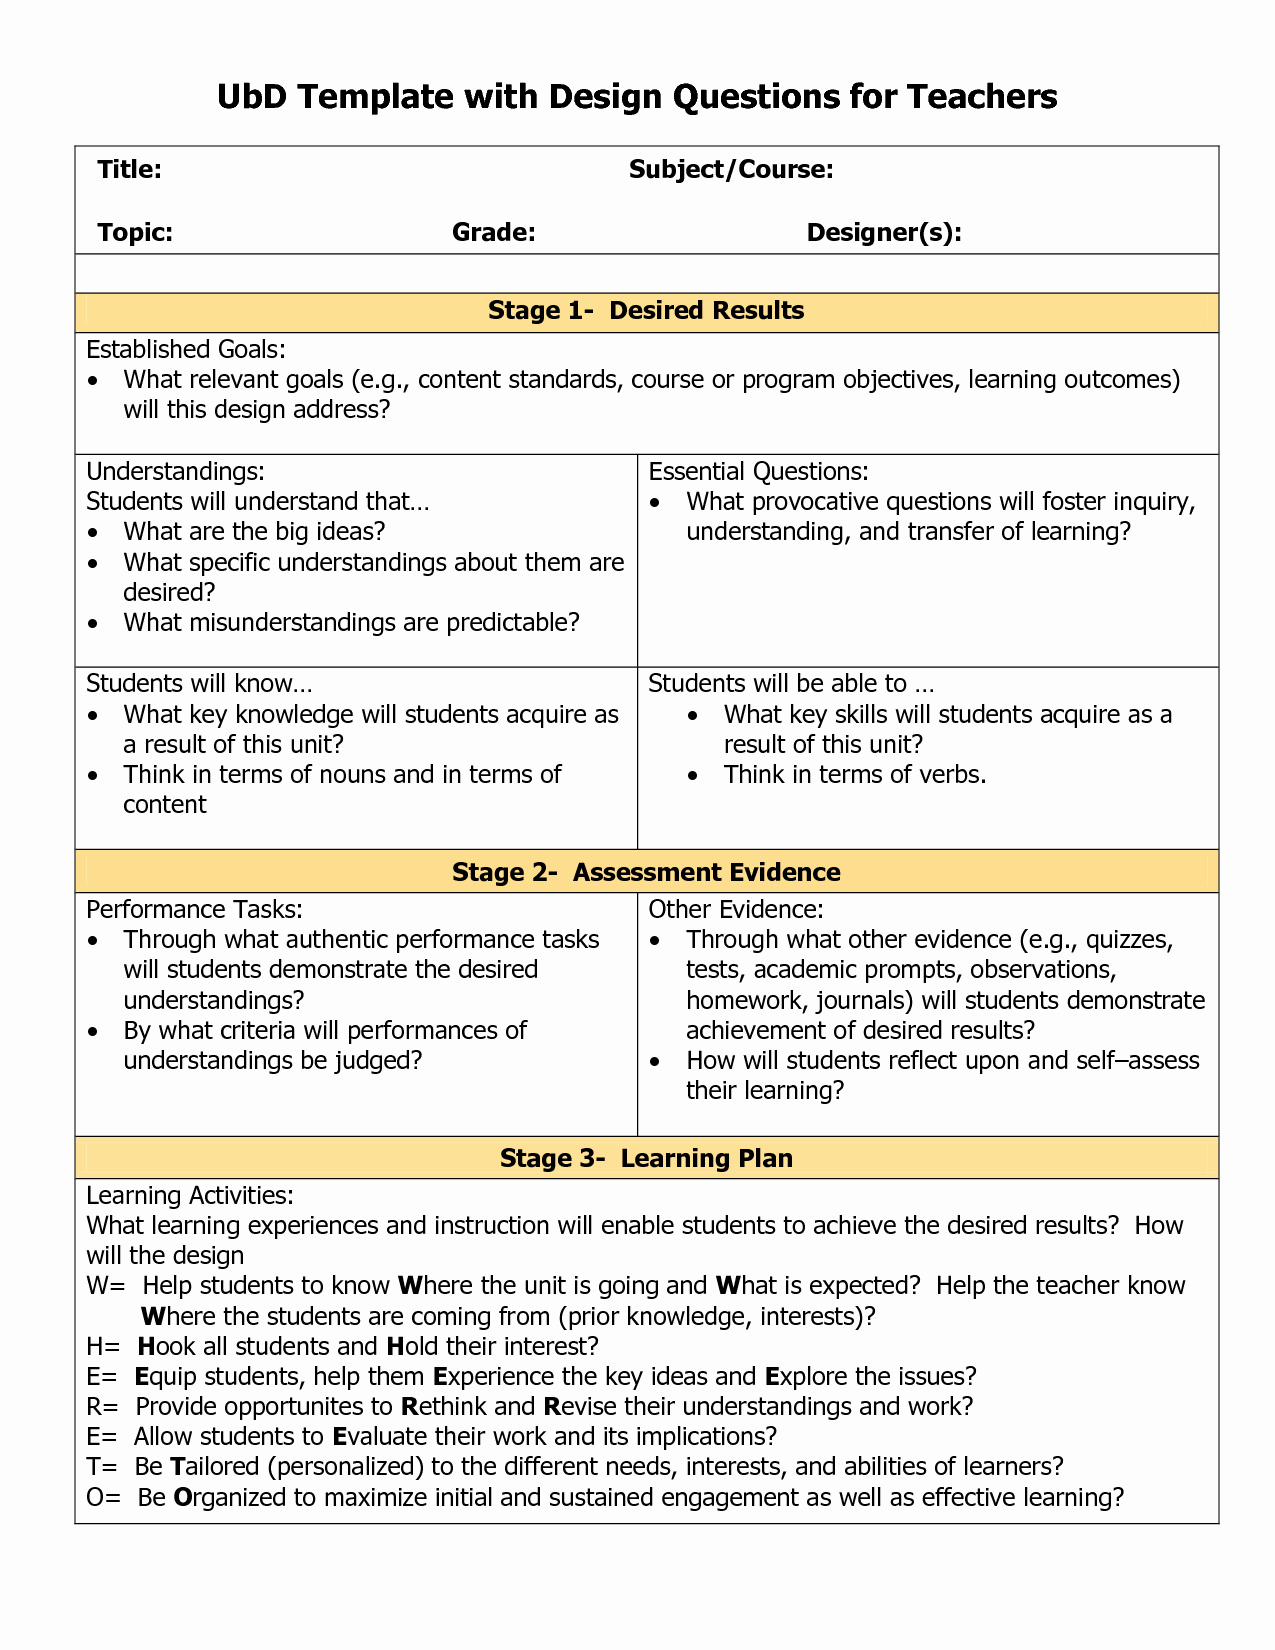 Cooperative Learning Lesson Plan Template Fresh Blank Ubd Template Things for the Classroom